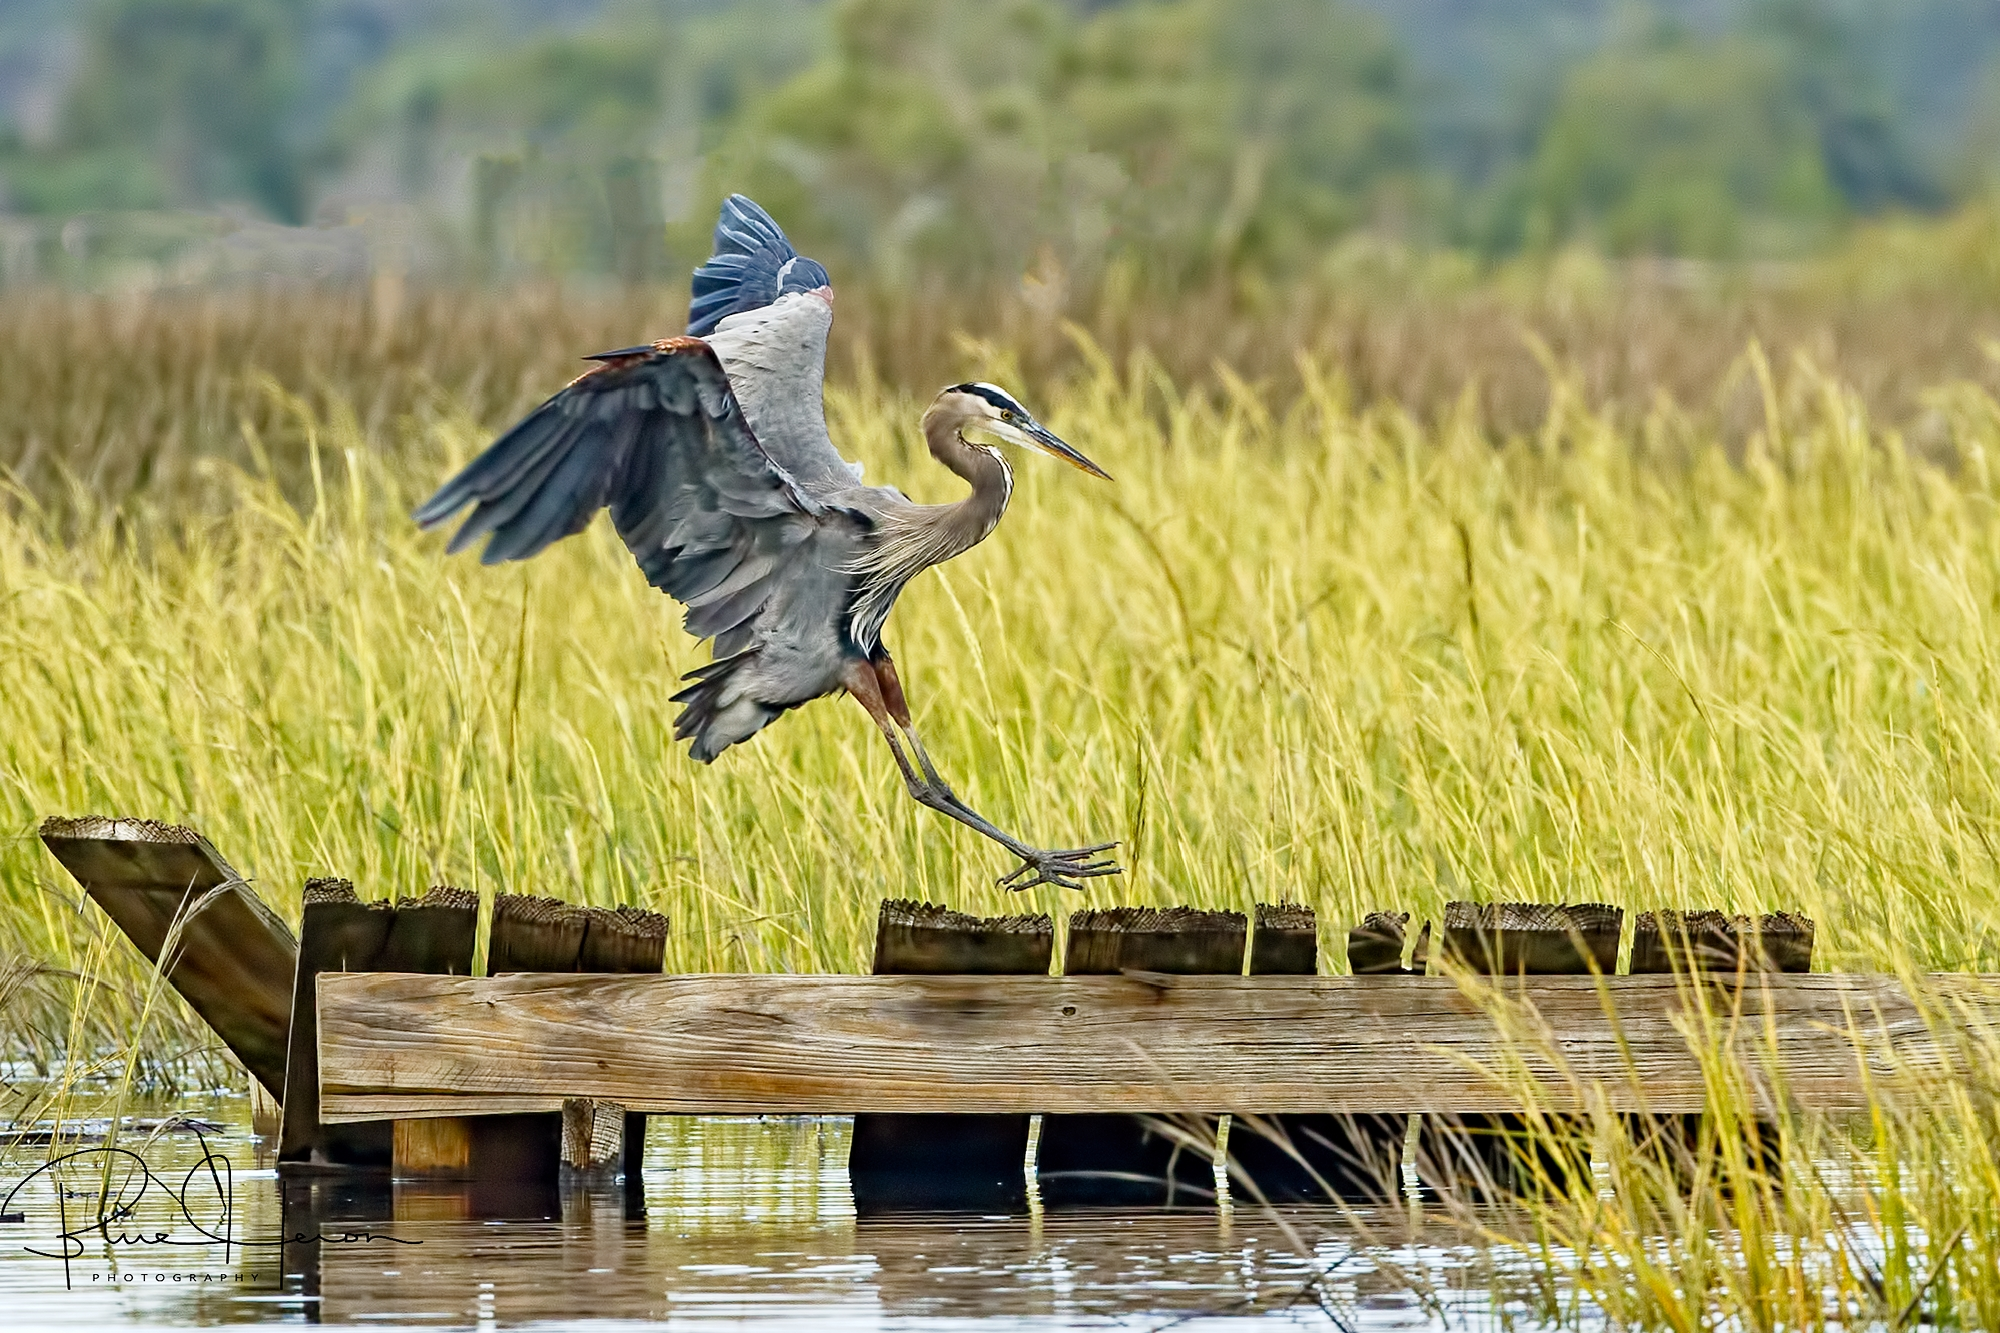 Old Man River (Omar), the Great Blue Heron and Patriarch of the Broward touches down on one of his favorite haunts, the old pier.